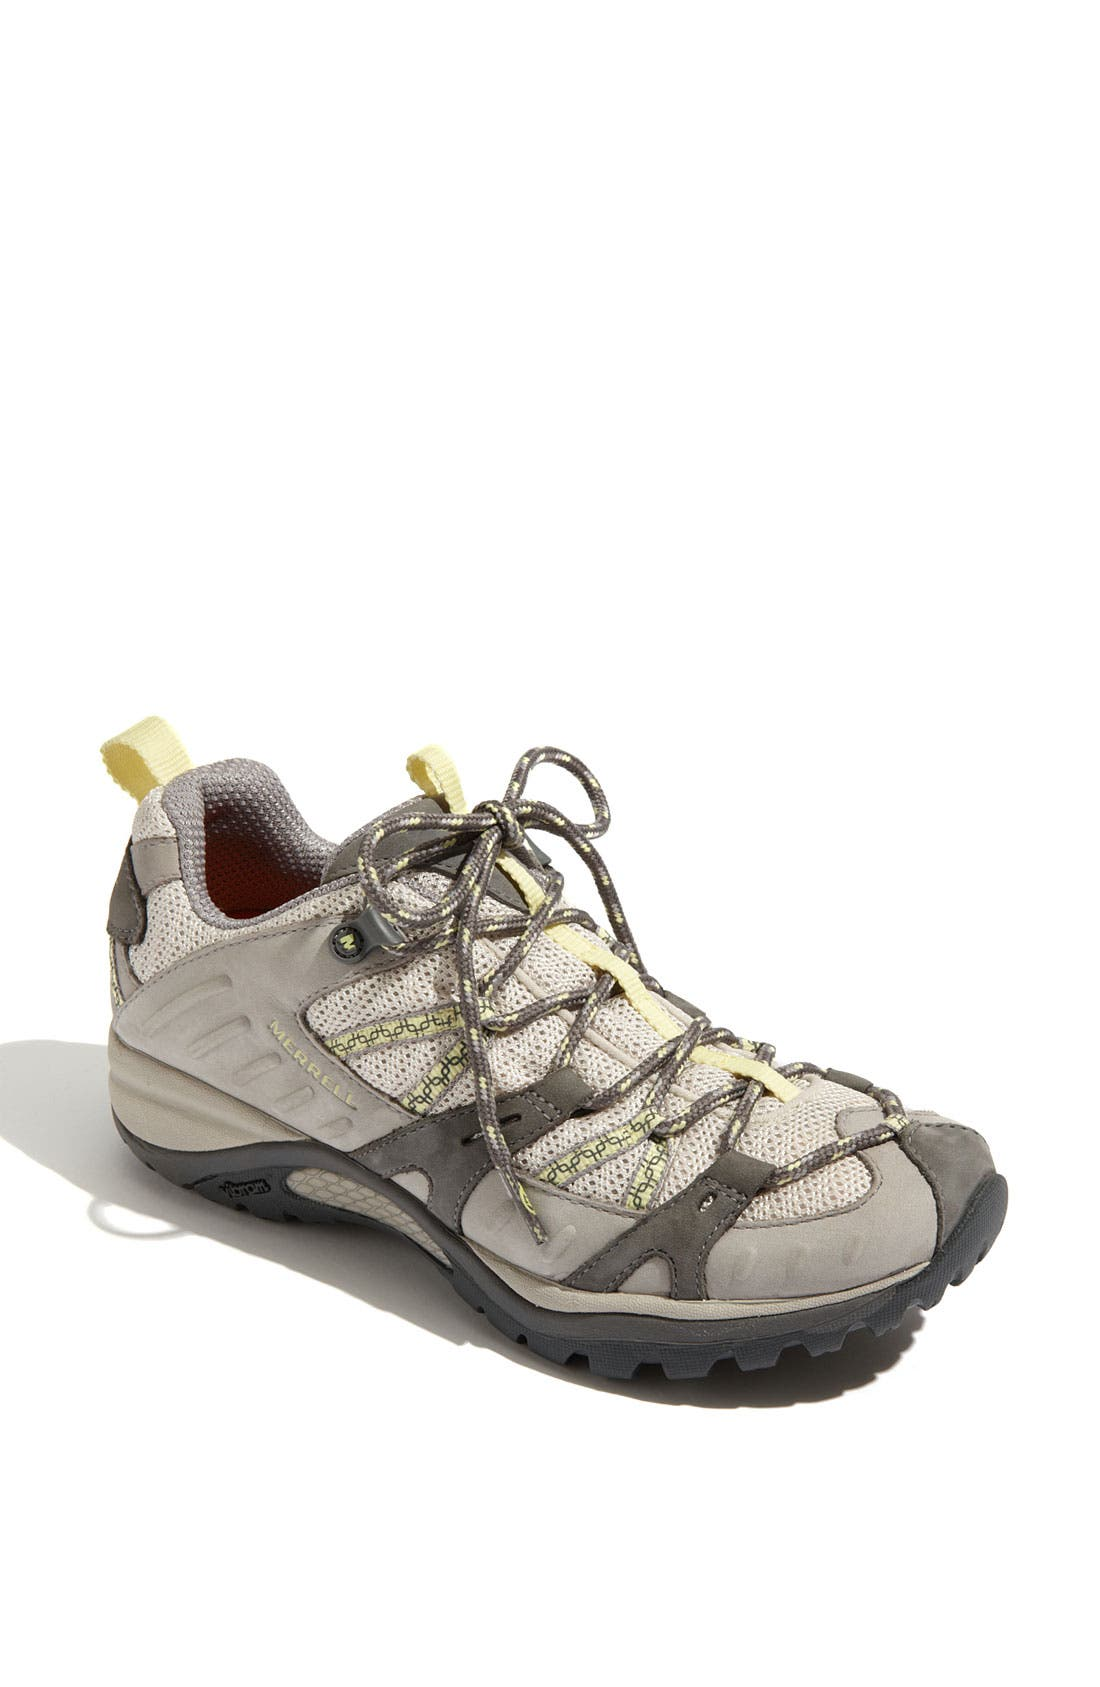 Main Image - Merrell 'Siren Sport' Outdoor Shoe (Women)